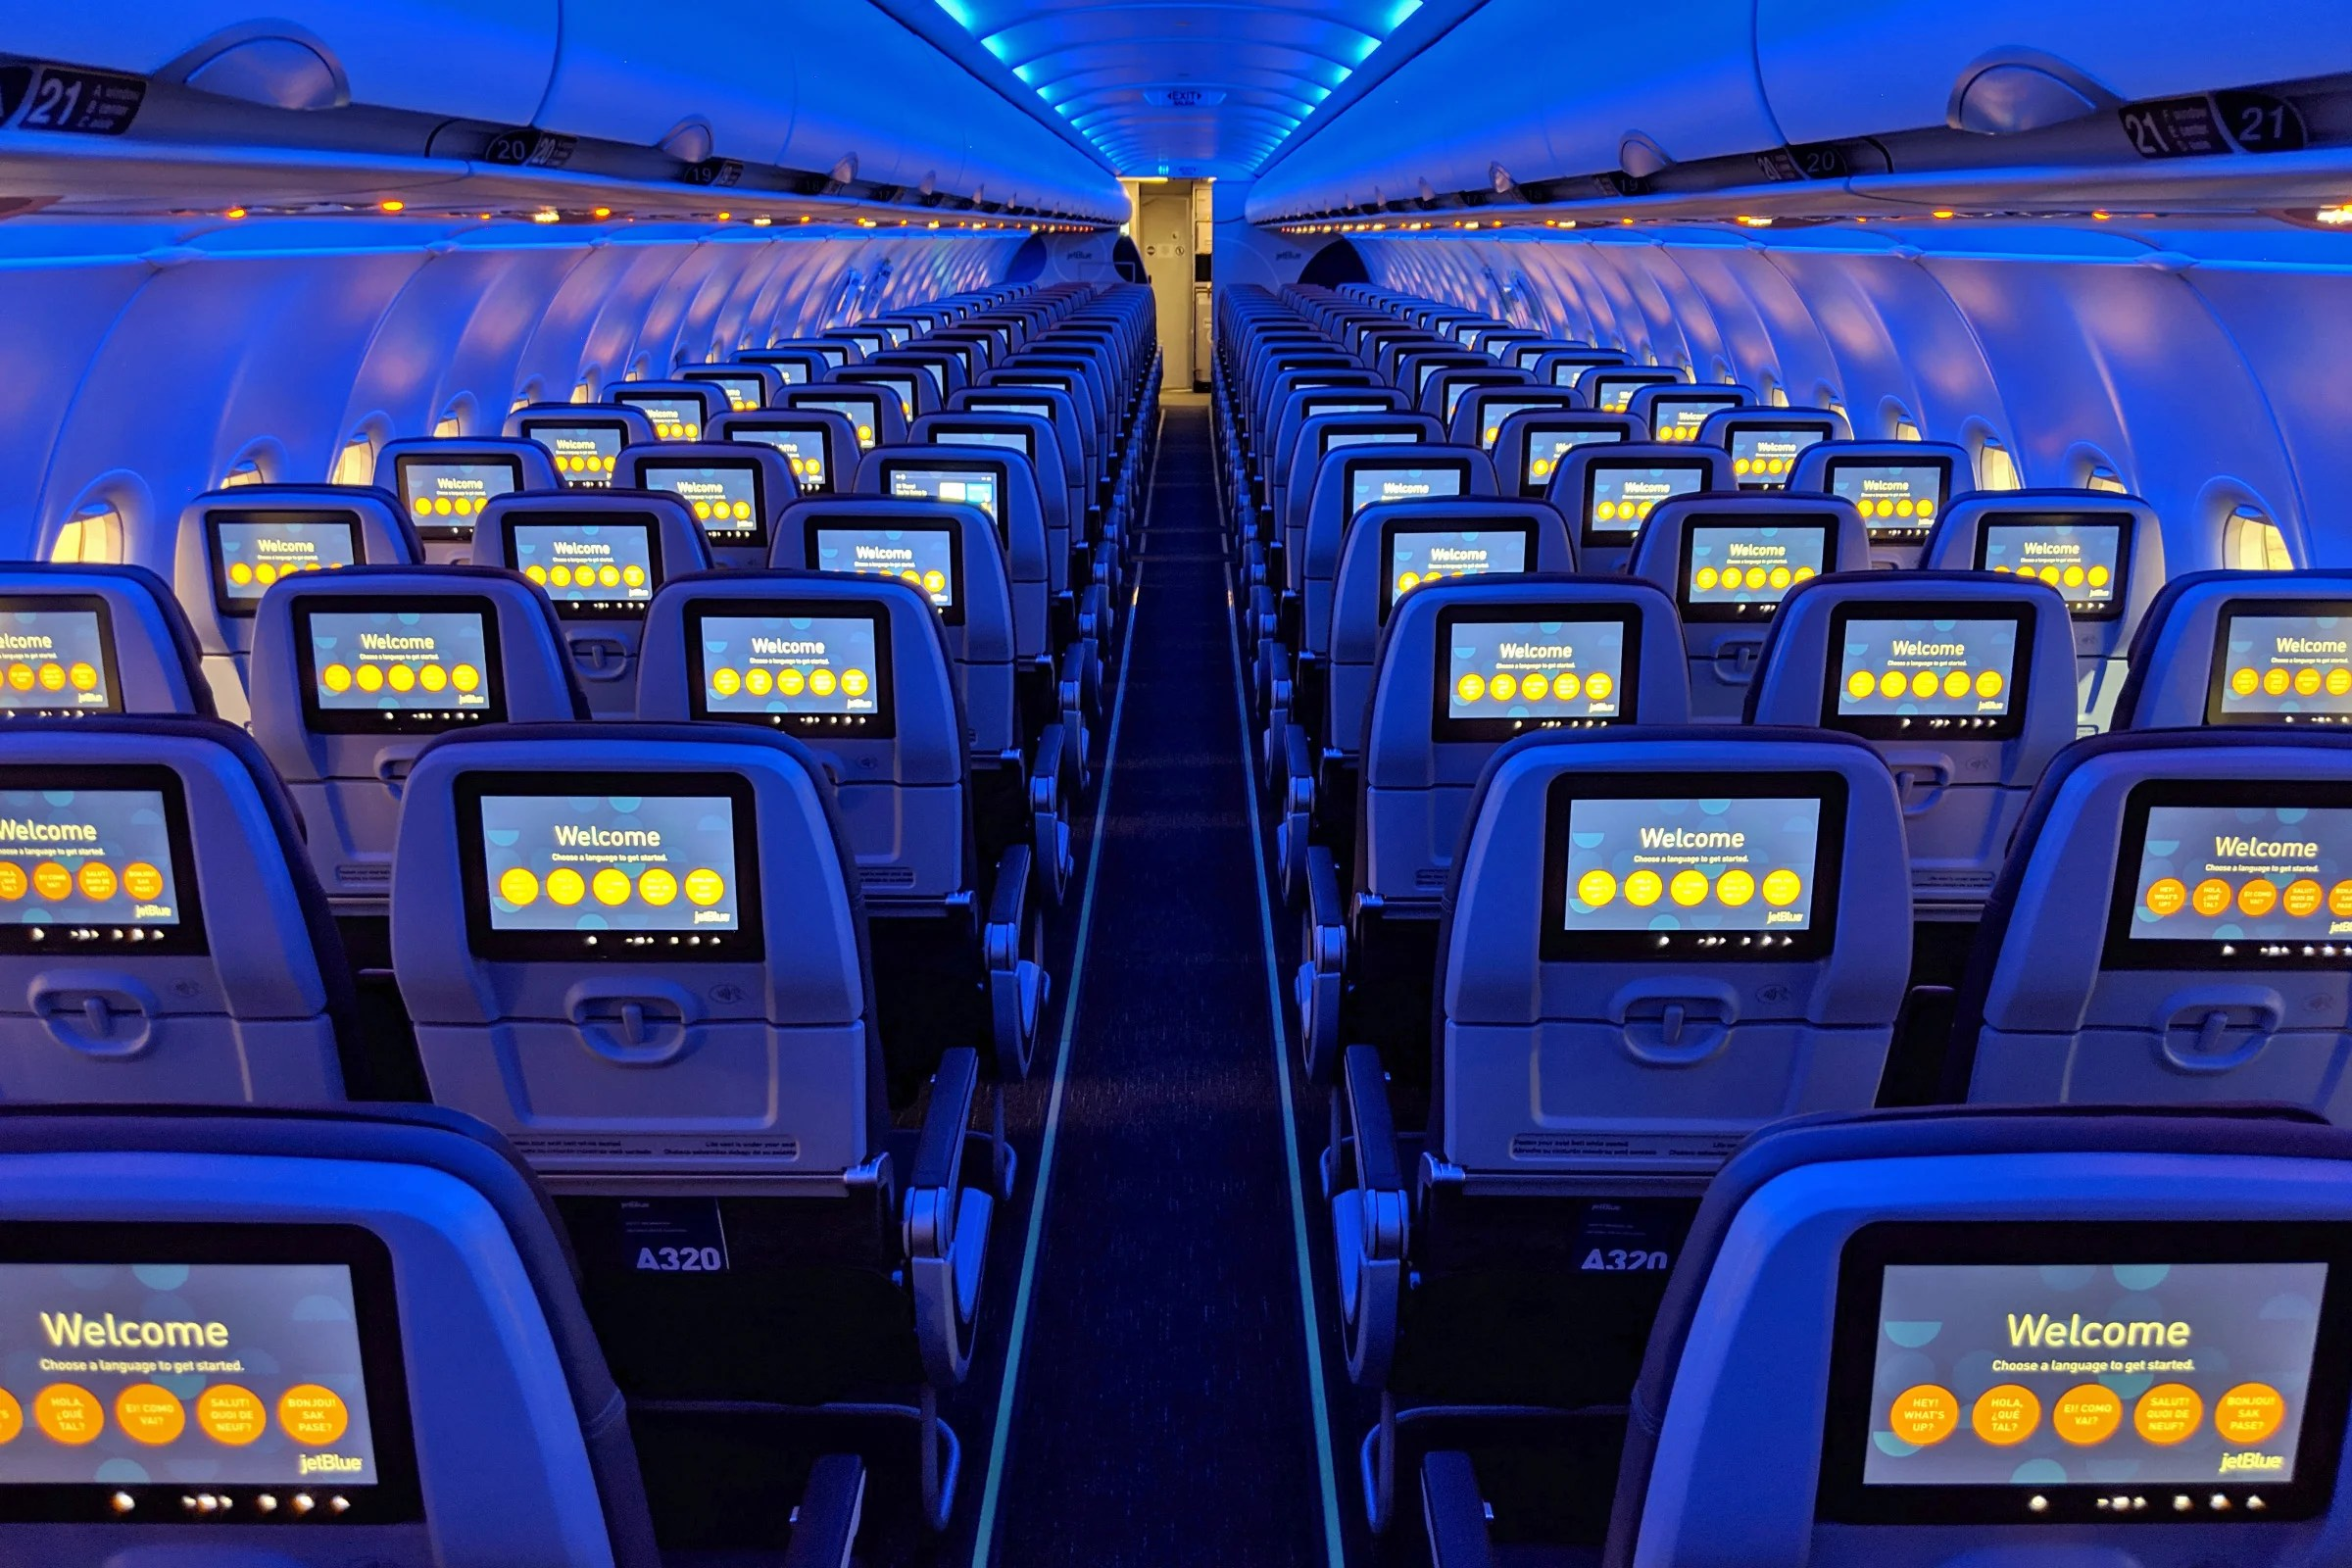 Inside JetBlue's First 'Phase 2' Retrofitted Airbus A320